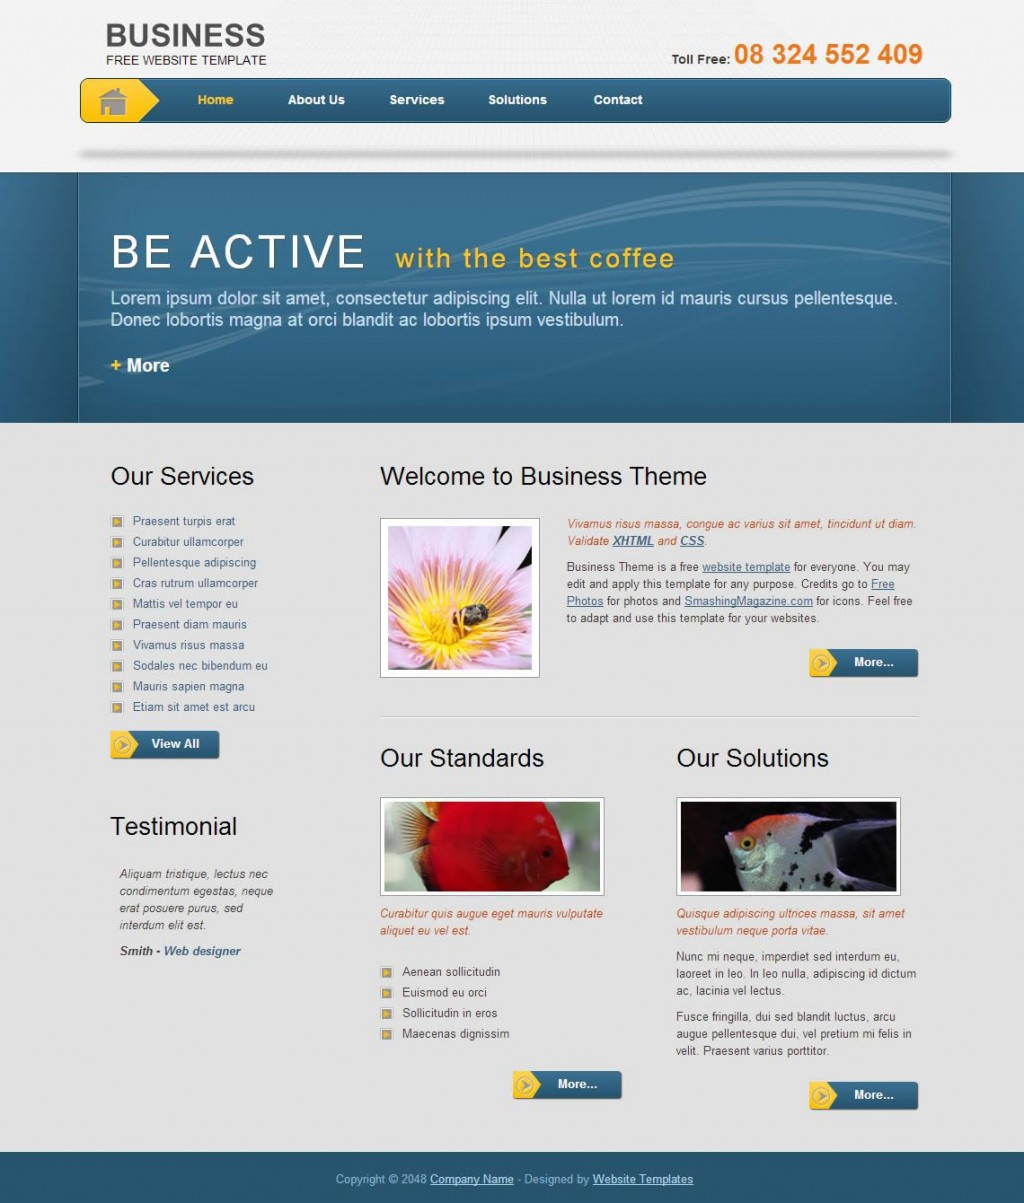 000 Remarkable Busines Html Template Free Download With Cs Highest Clarity  Css Responsive WebsiteLarge